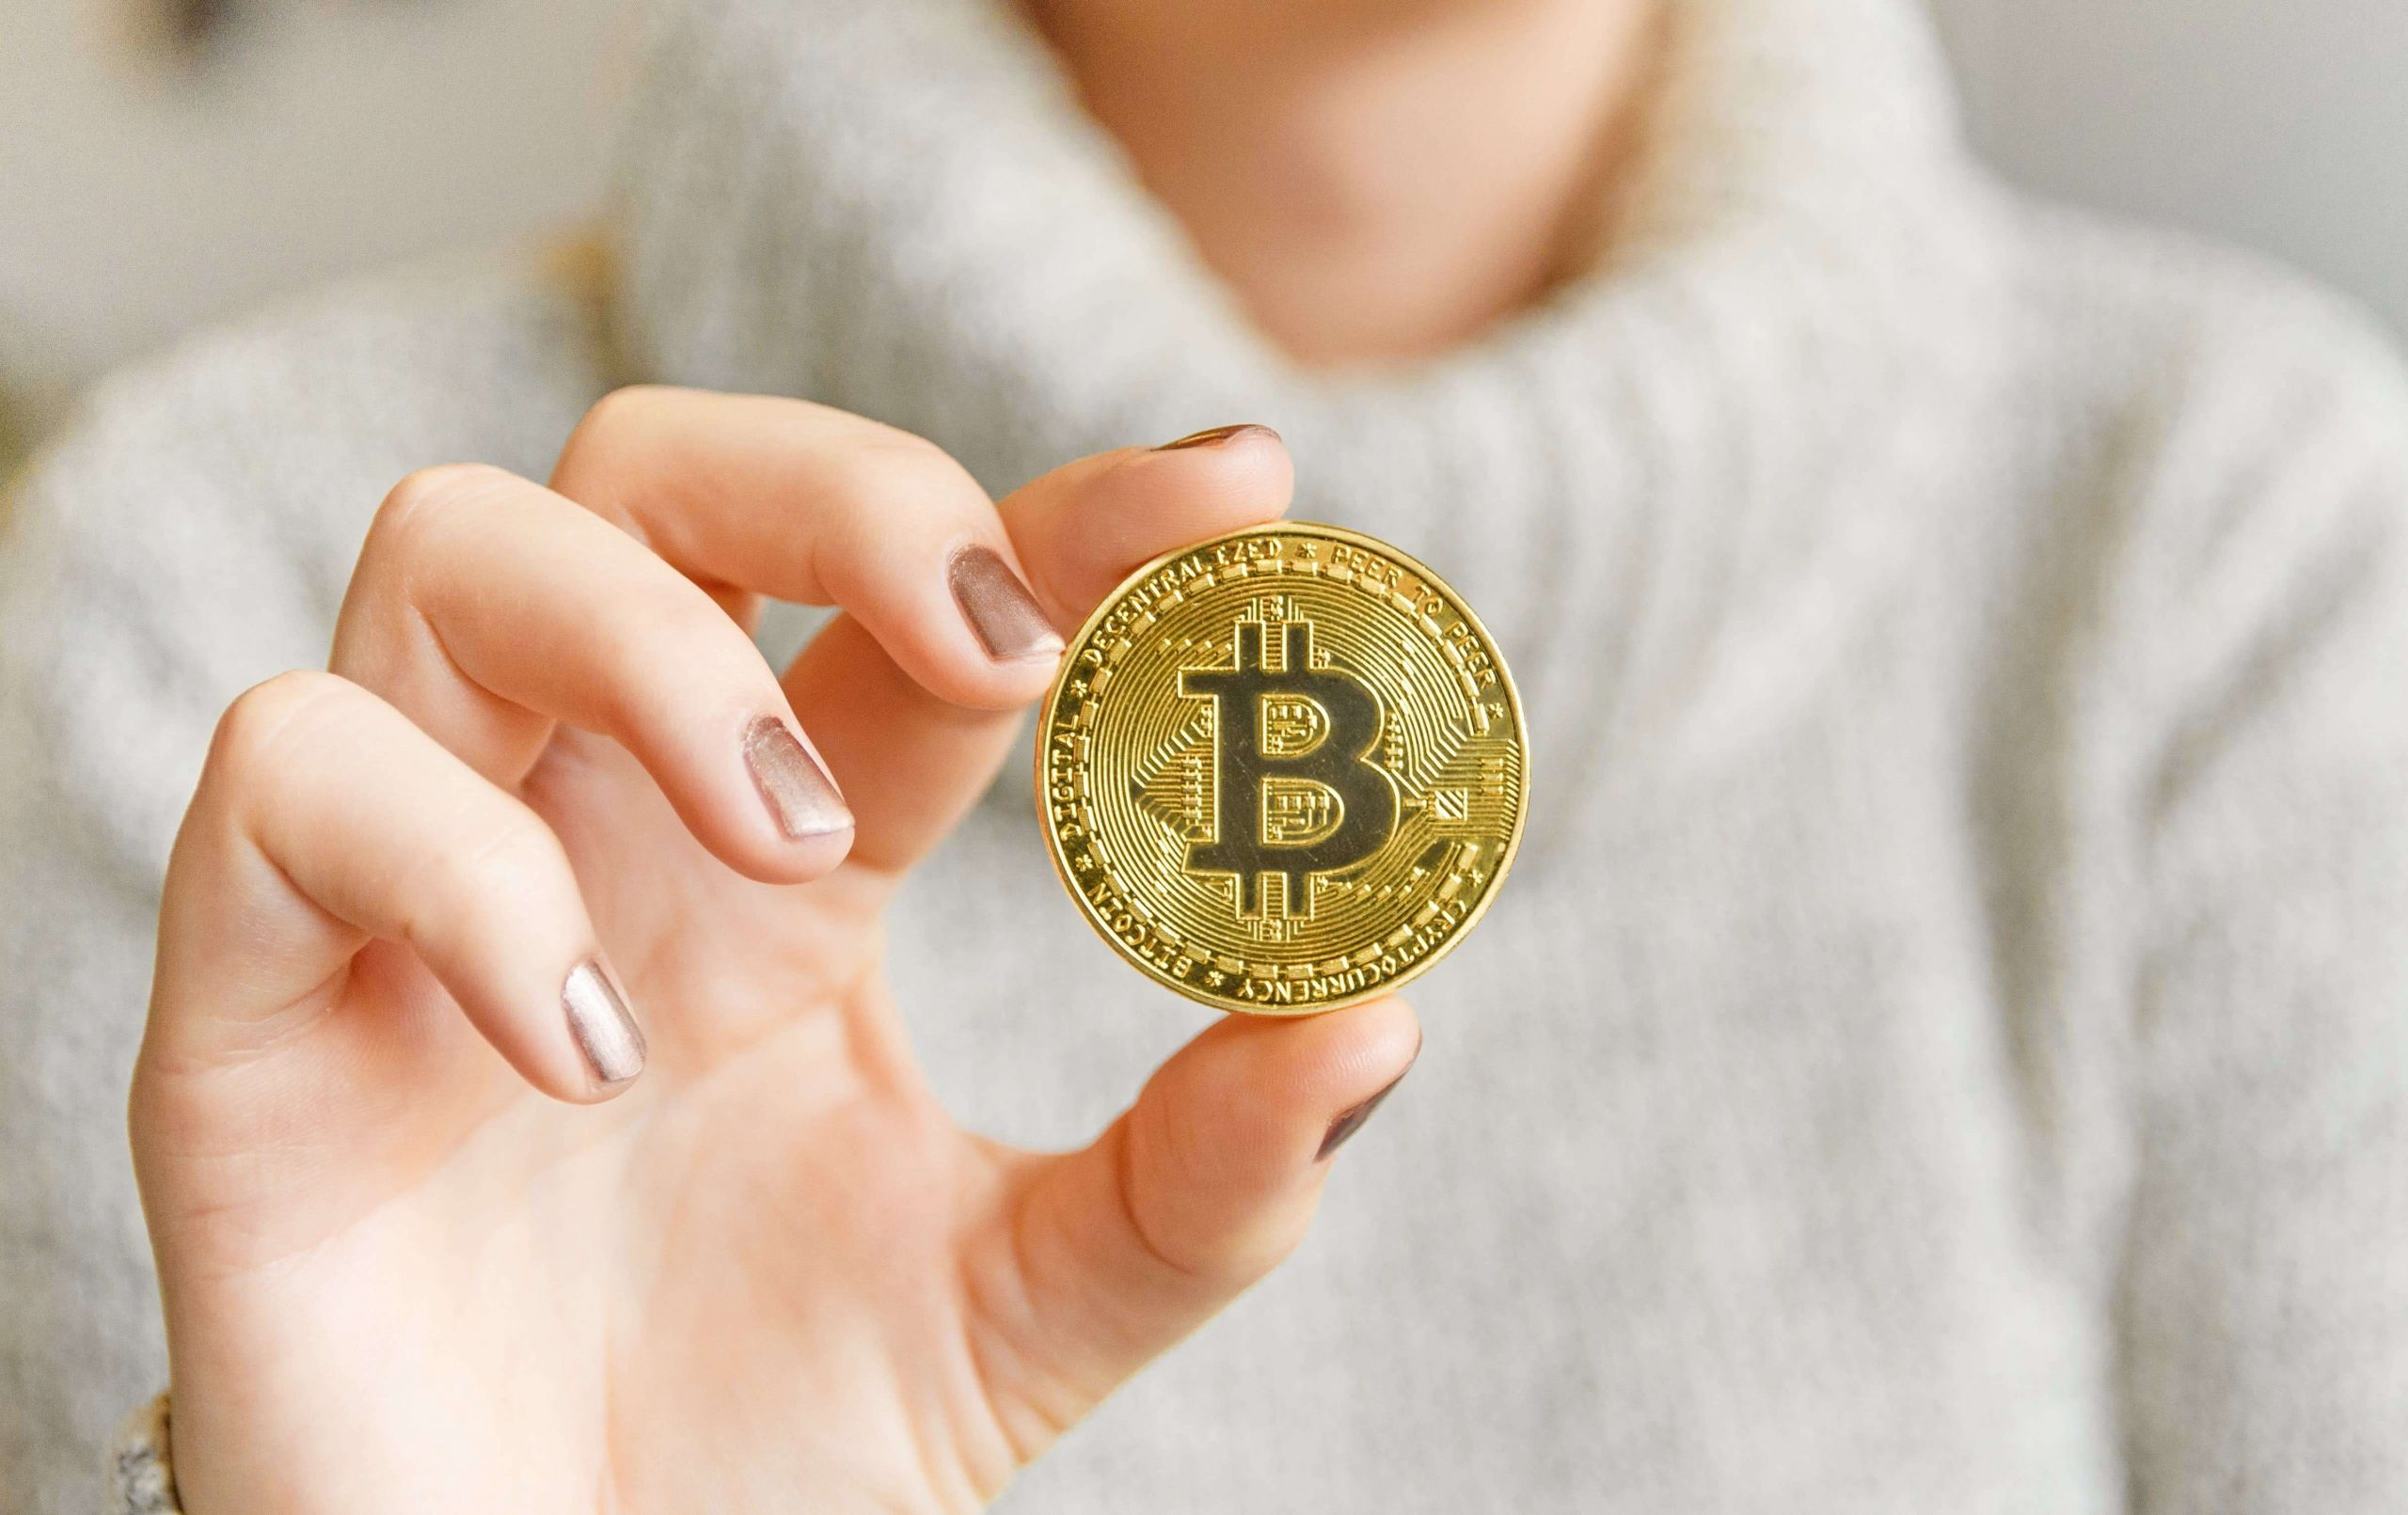 Picture of a hand holding a bitcoin